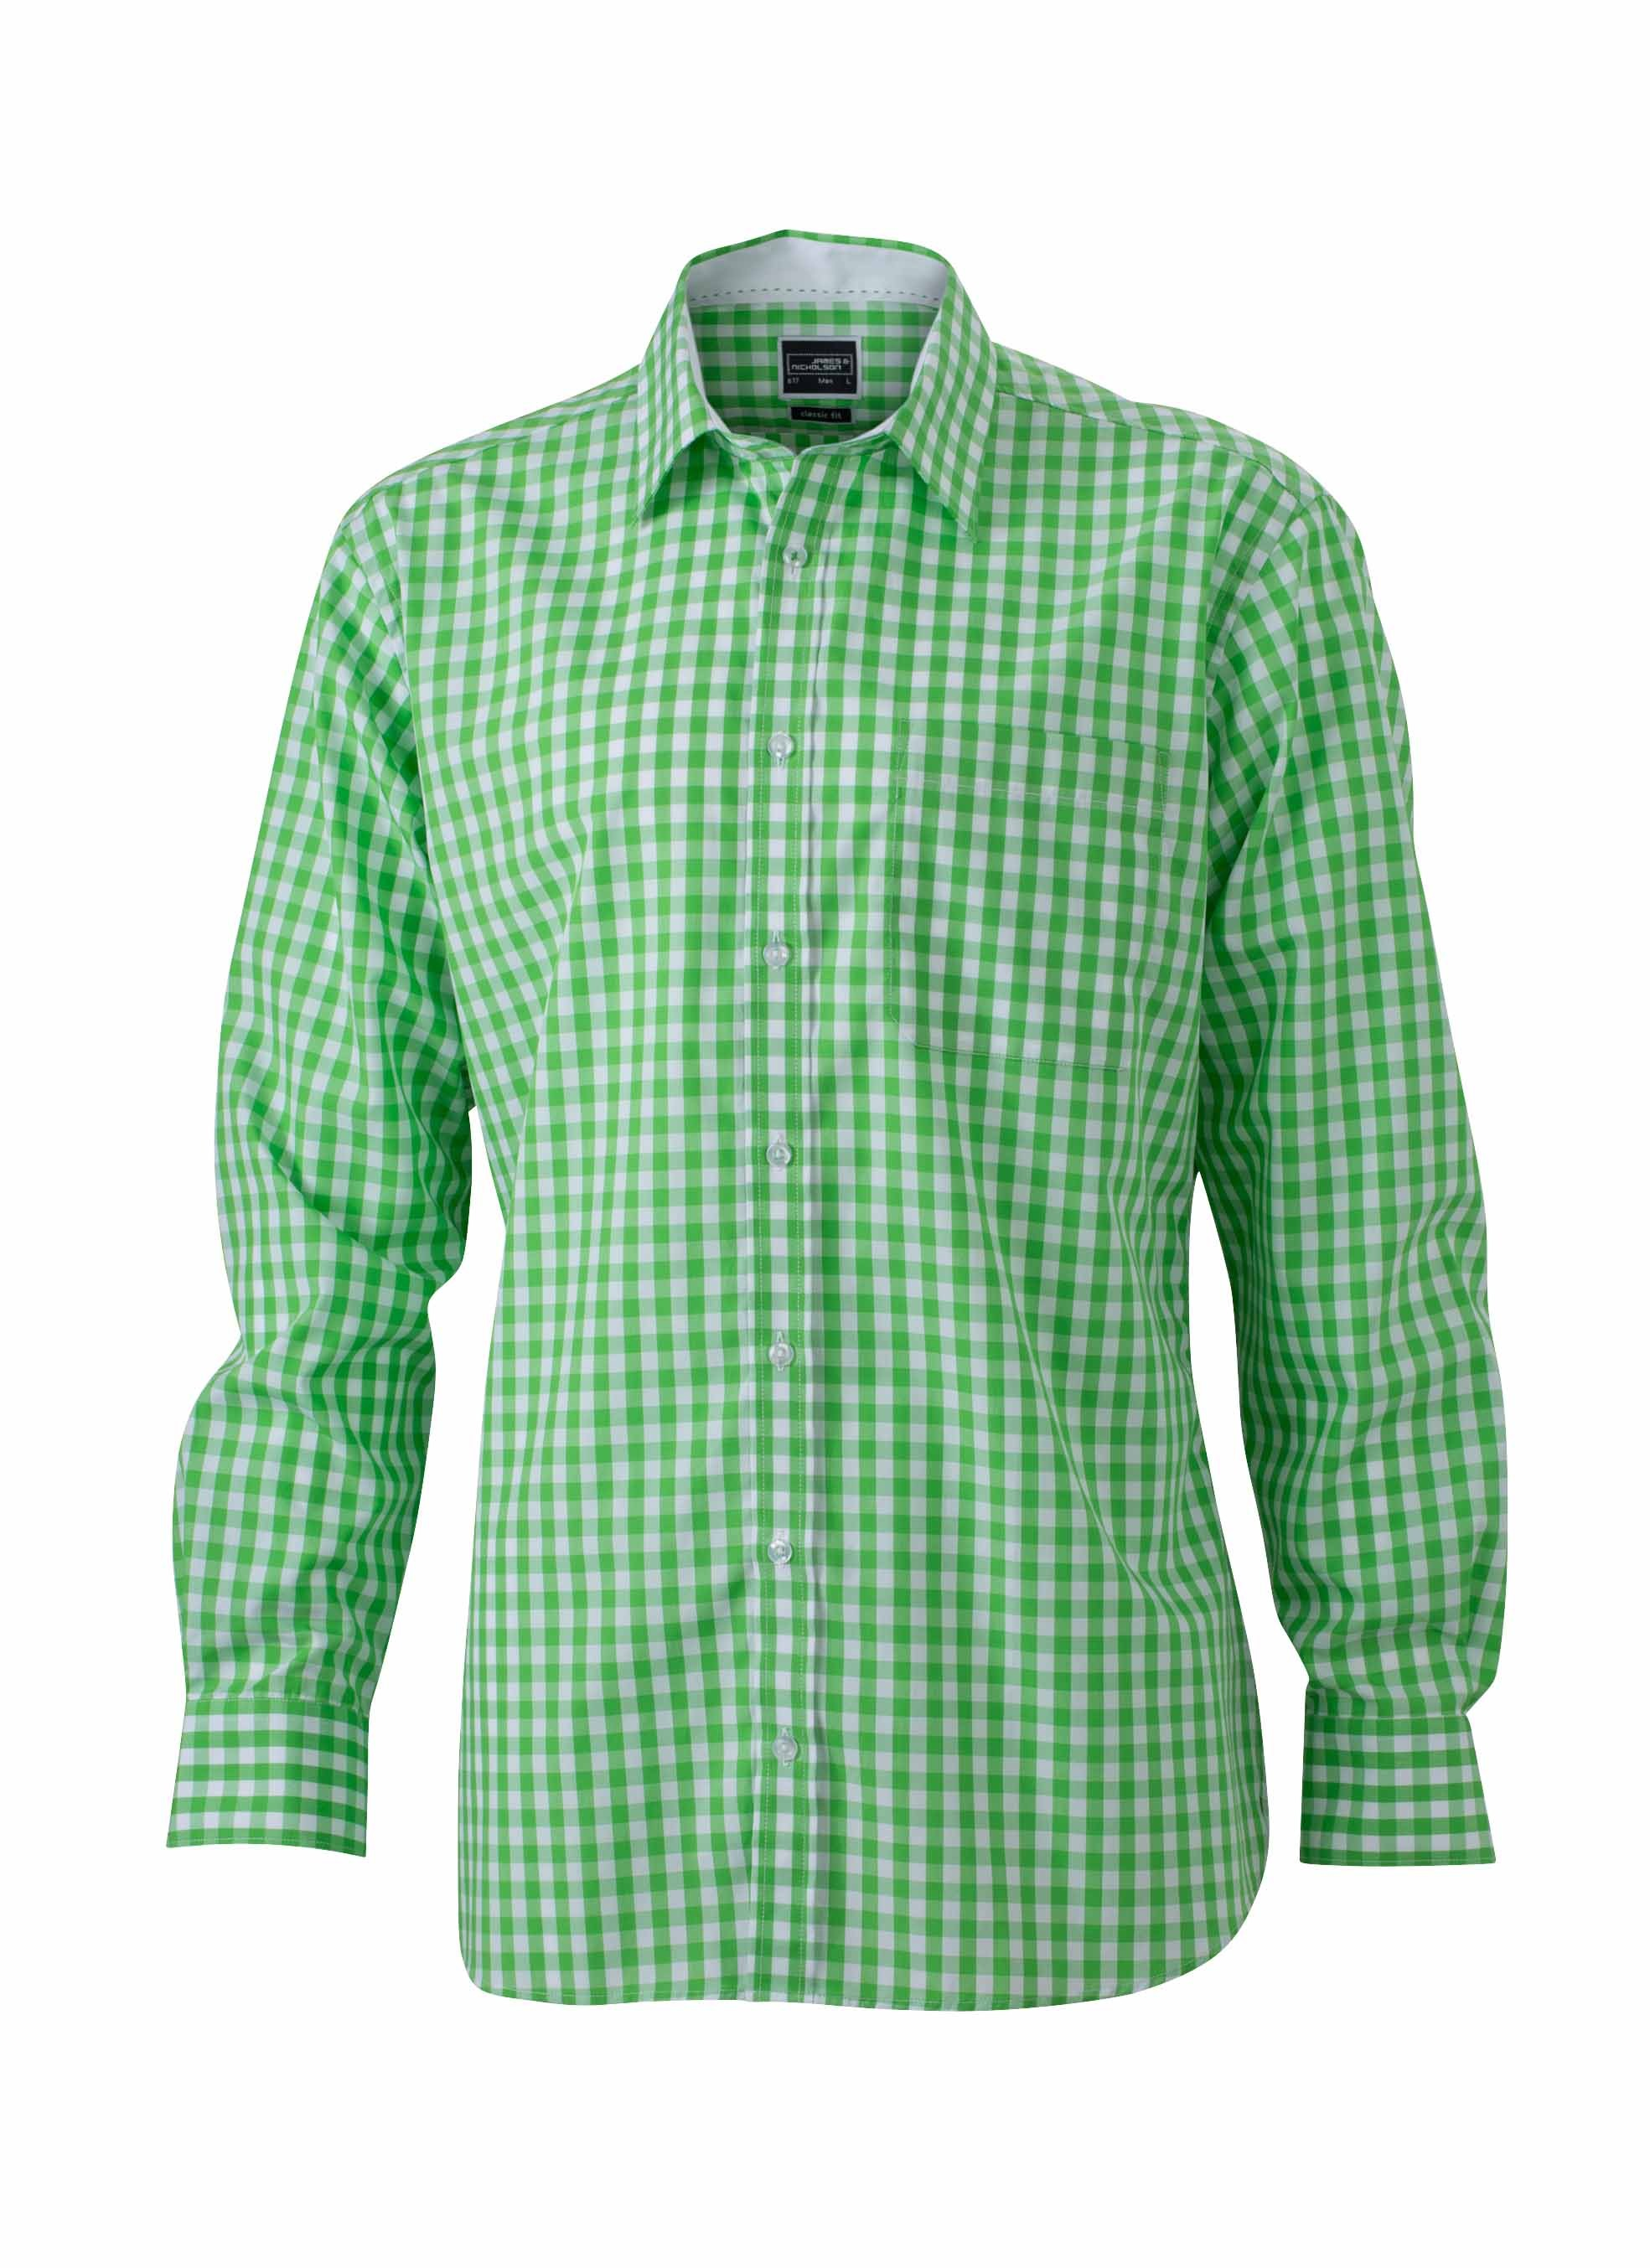 J&N men's checked shirt